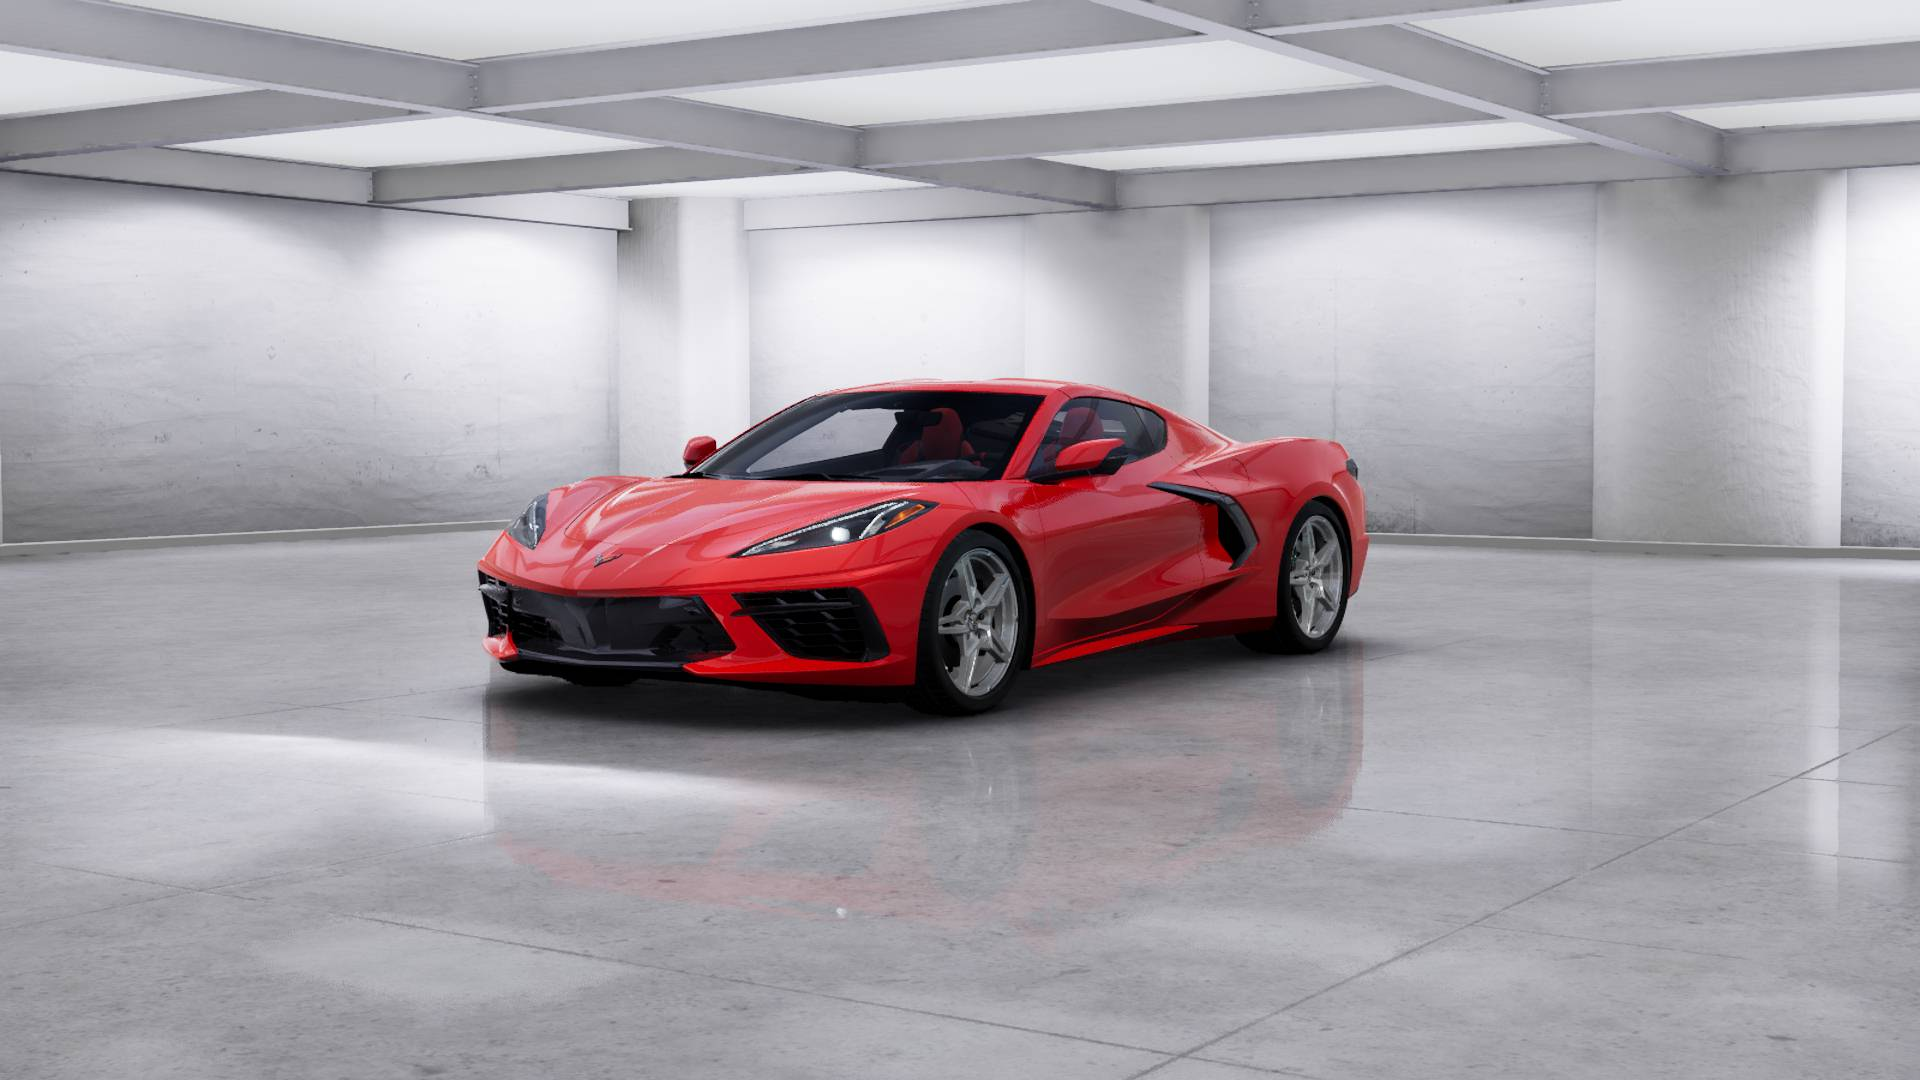 2020 C8 Chevrolet Corvette Stingray: All the Colors ...